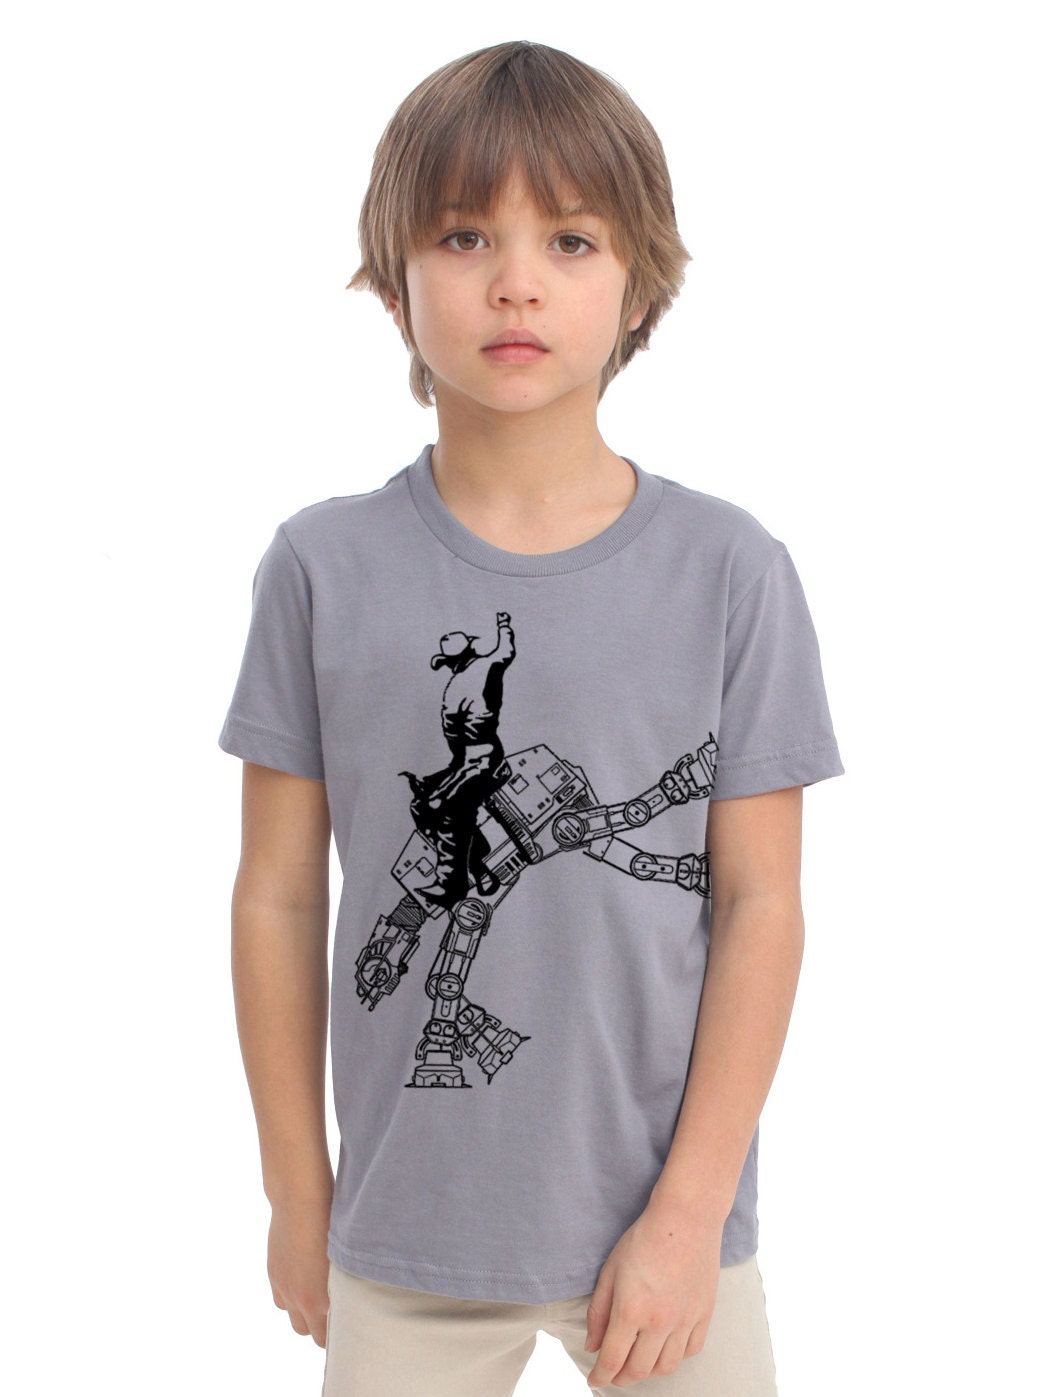 High quality Kids Tees by independent artists and designers from around the world. Children's clothes on Redbubble are expertly printed on ethically sourced apparel and are available in a range of colors and sizes. All orders are custom made and most ship worldwide within 24 hours.